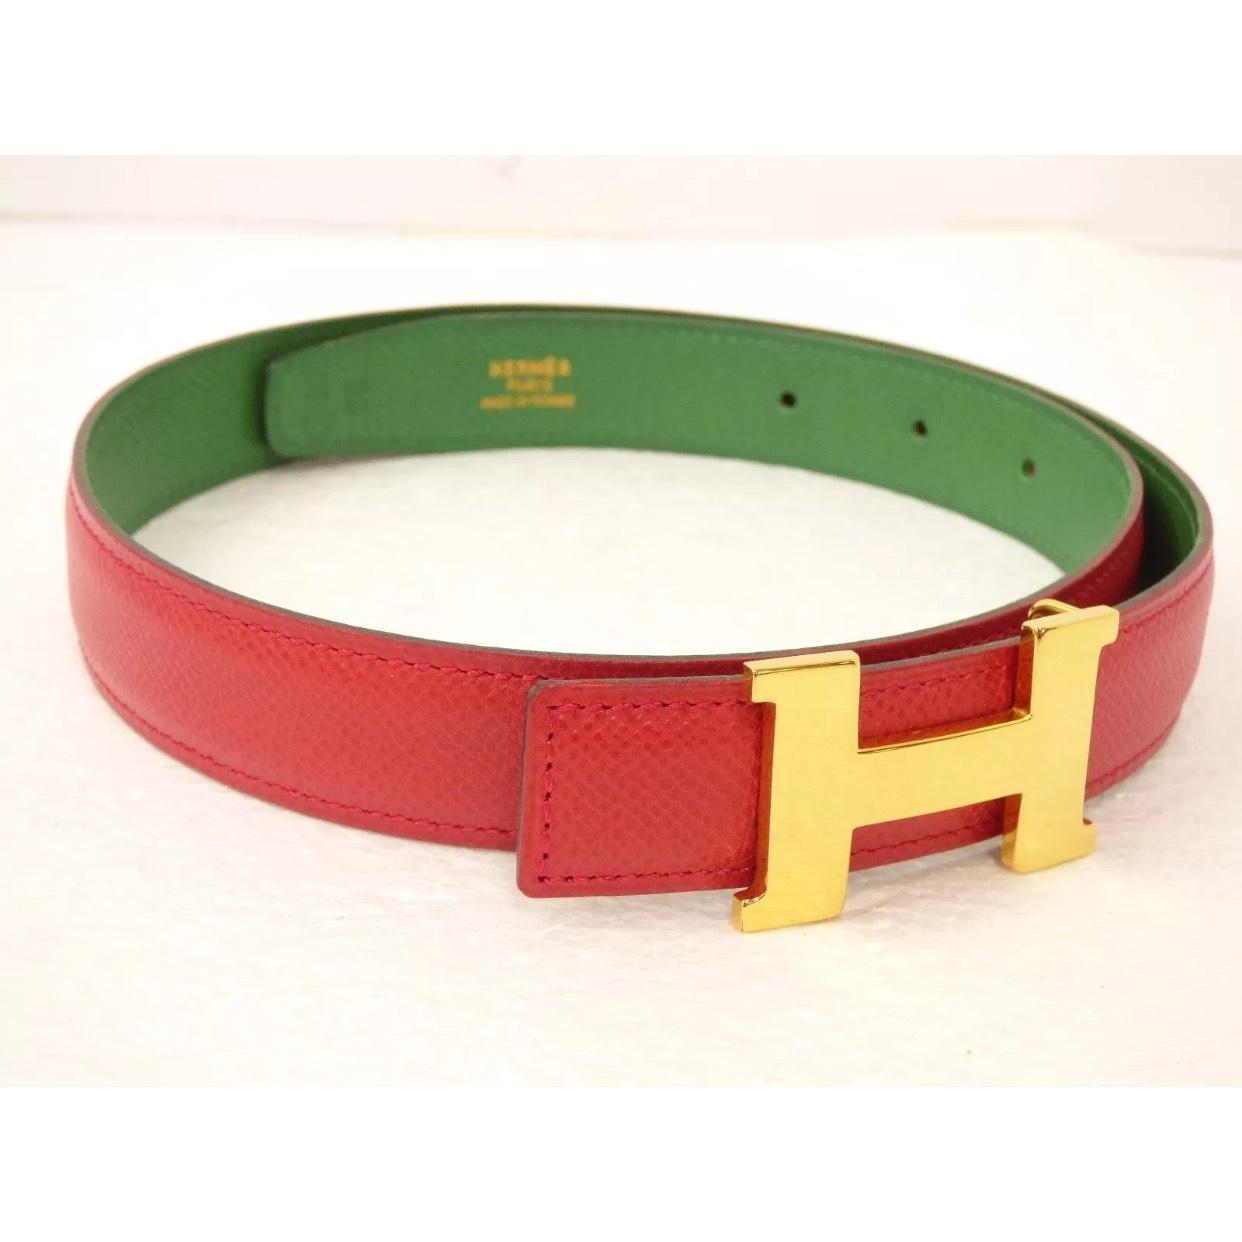 f31d3c0a0fc41 ... shopping hermès red mini h logo buckle green with dust bag belt tradesy  cf20e 81c5d